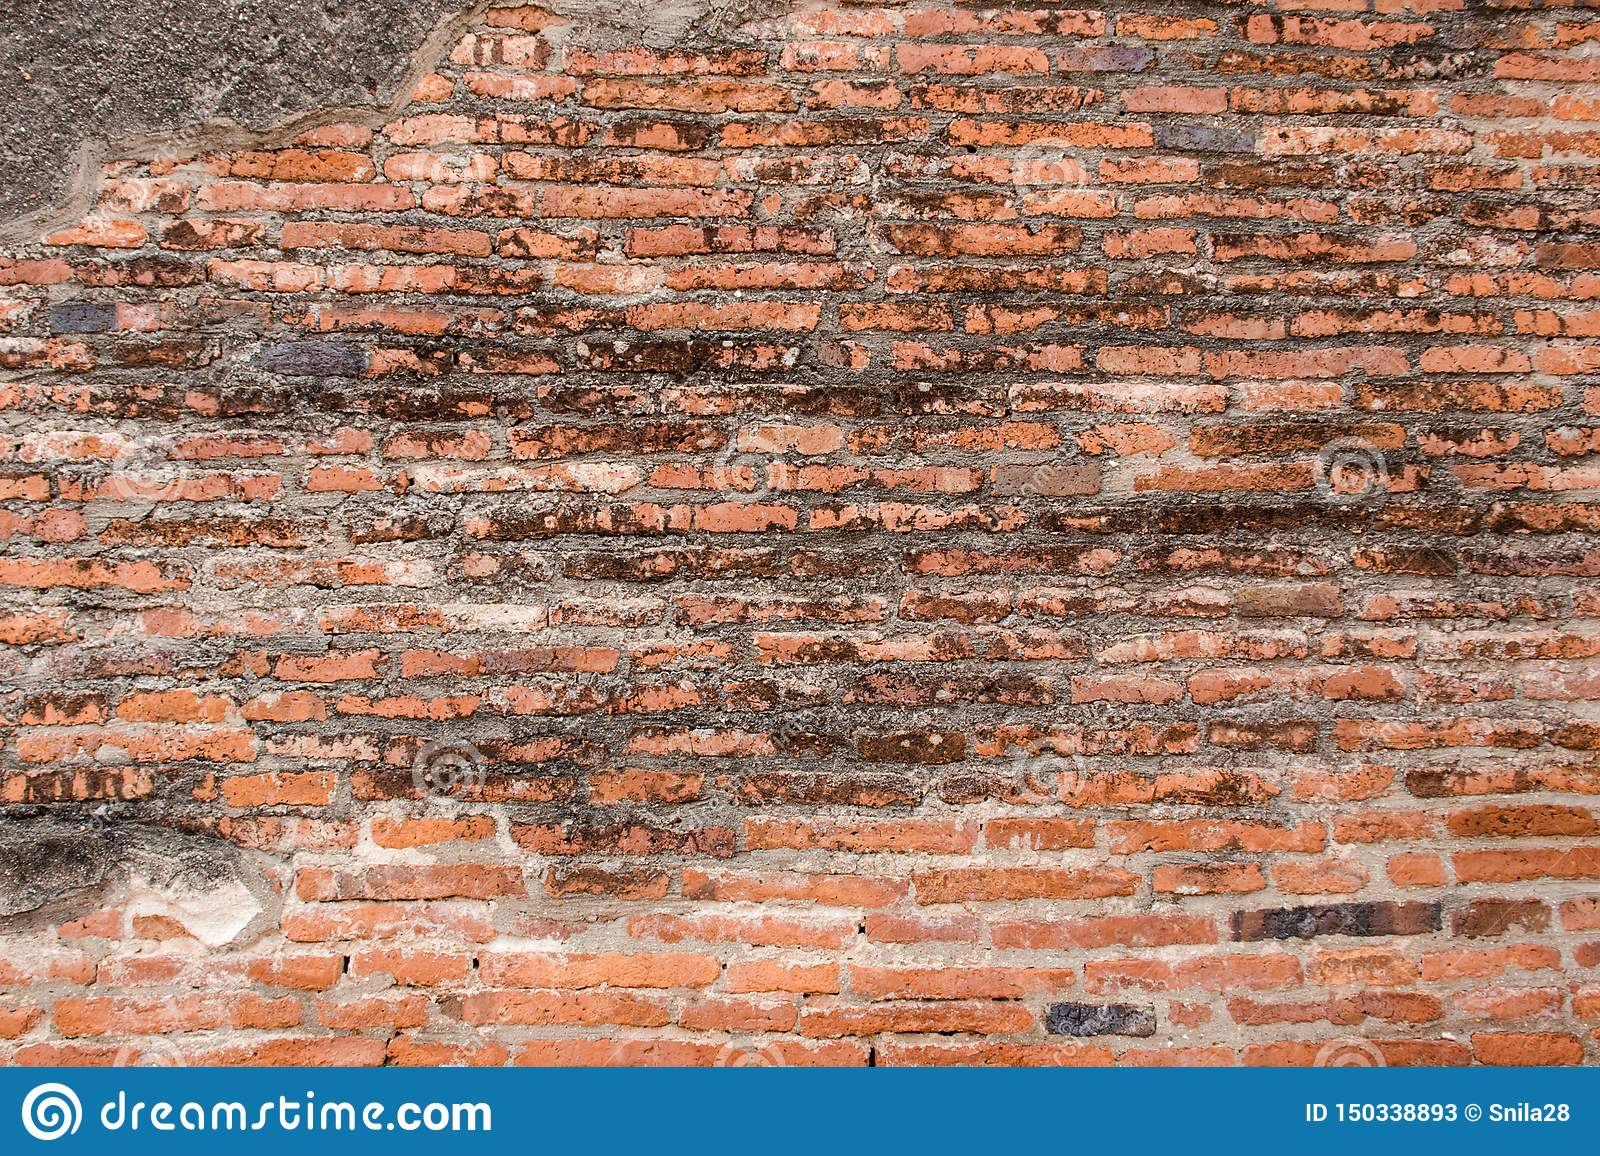 Old red Brick and dry Wall Texture background image. Grunge Red Stonewall Background